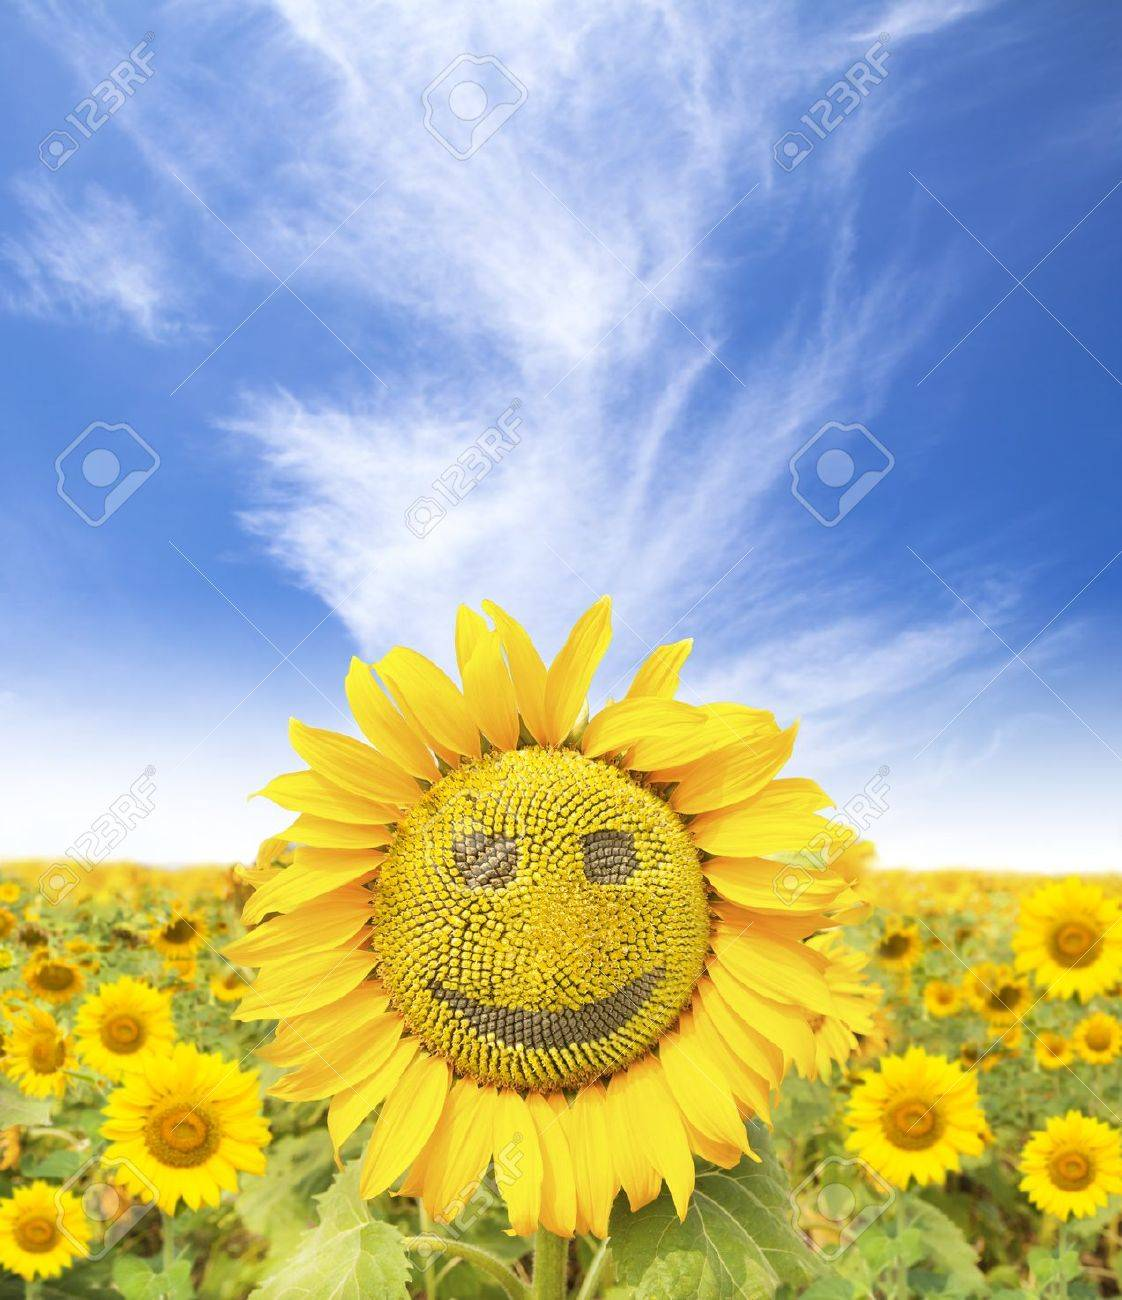 Smiling Sunflower Images Sunflower Face Smiling Face